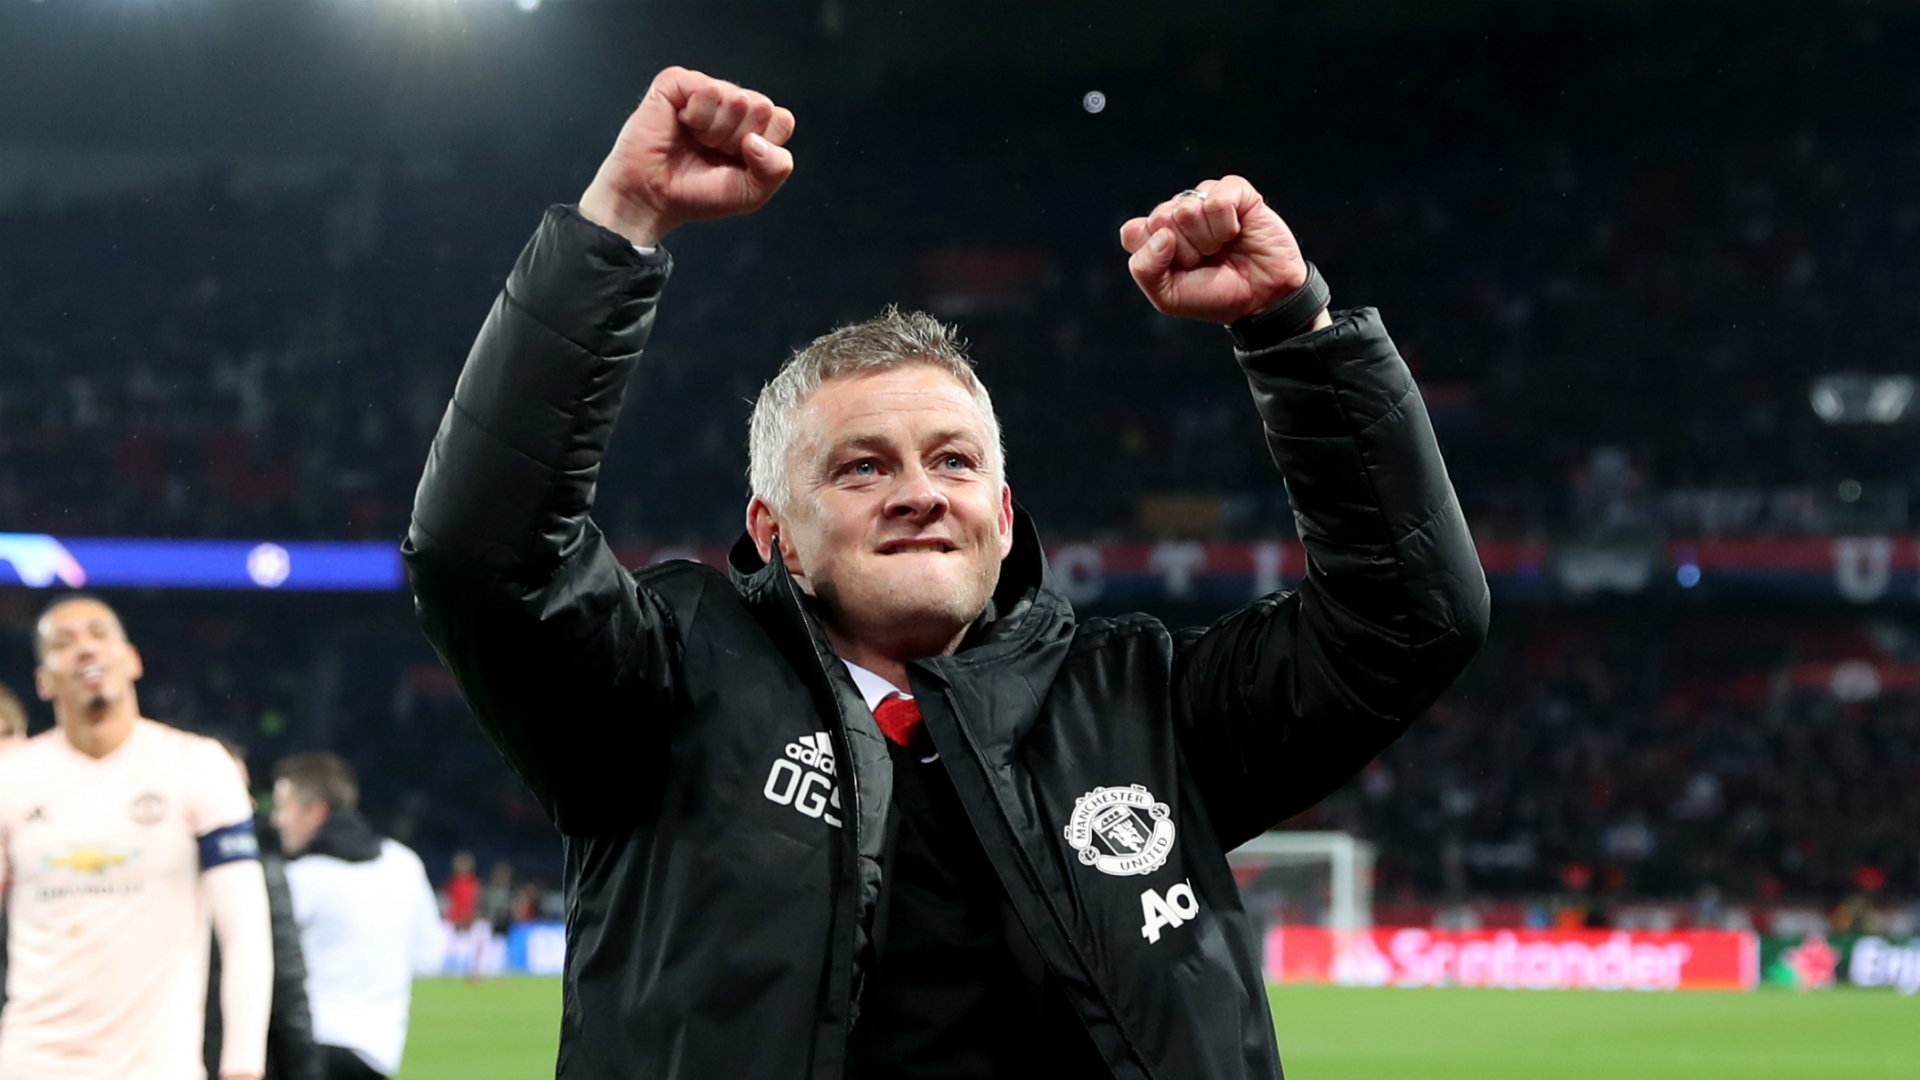 Ole Gunnar Solskjaer appointed Manchester United manager on permanent basis